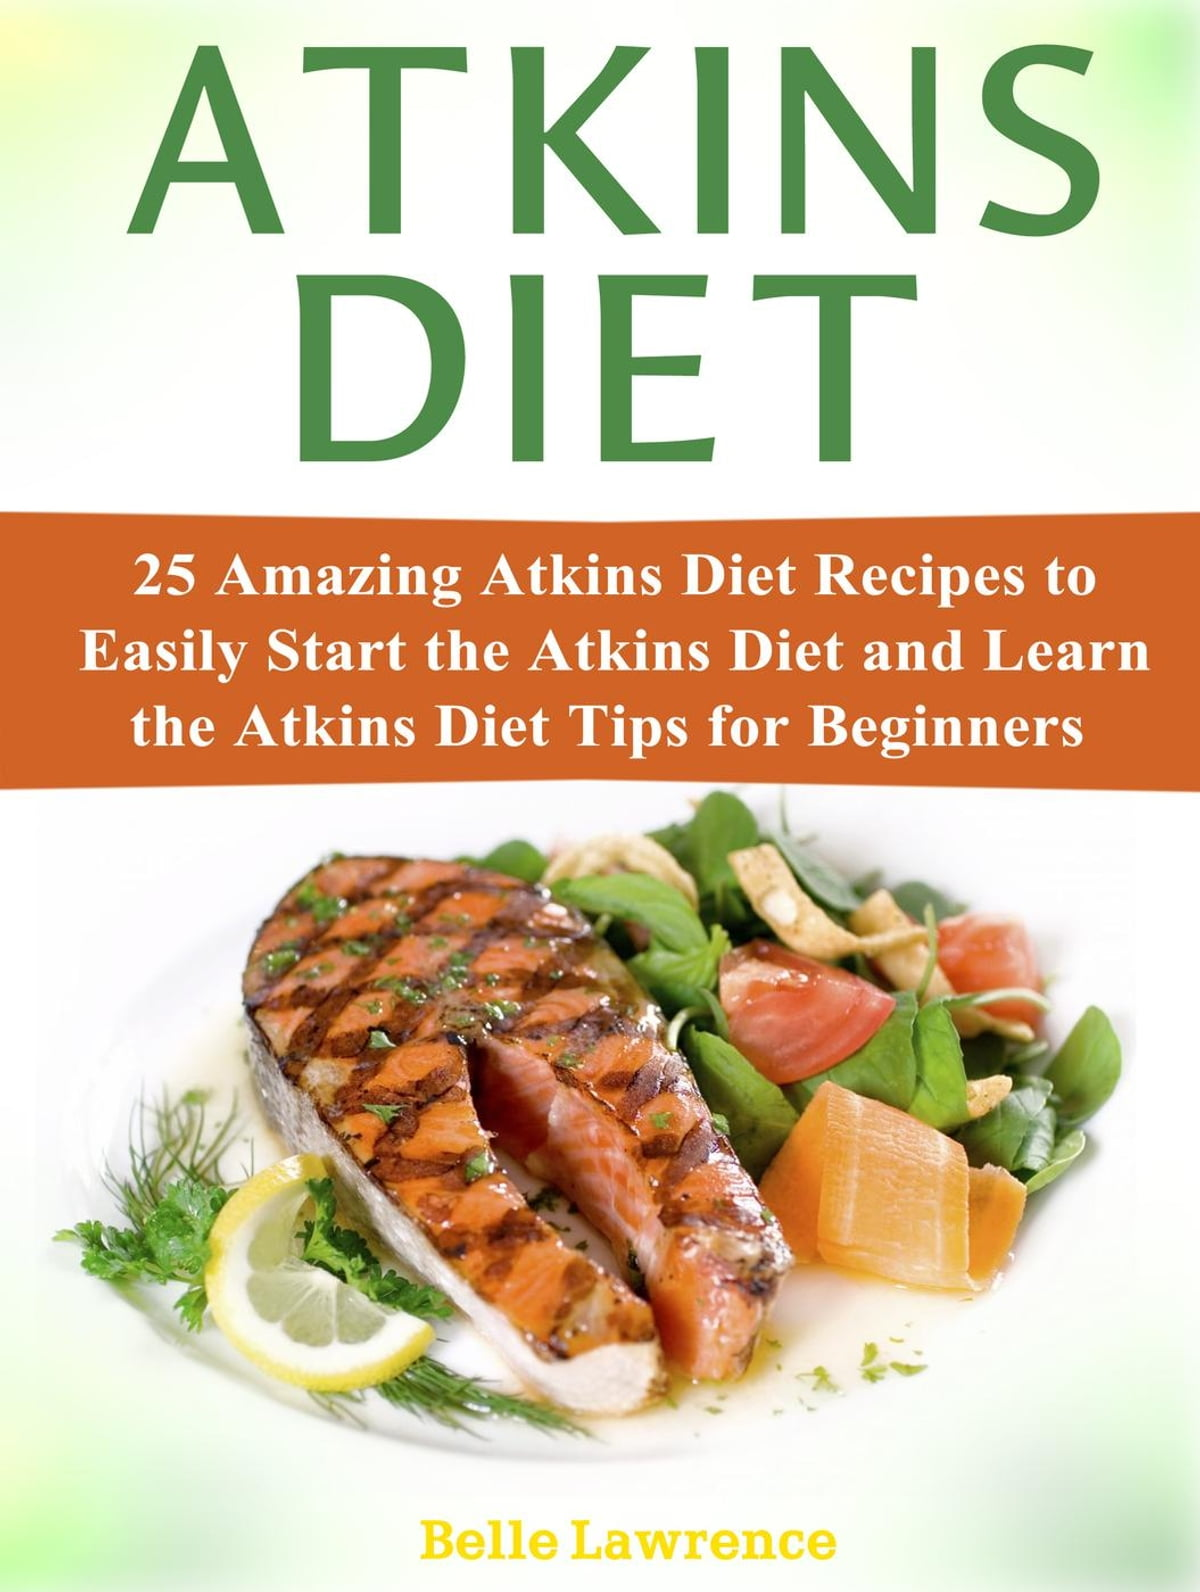 Atkins Diet: 25 Amazing Atkins Diet Recipes to Easily Start the Atkins Diet  and Learn the Atkins Diet Tips for Beginners ebook by Belle Lawrence -